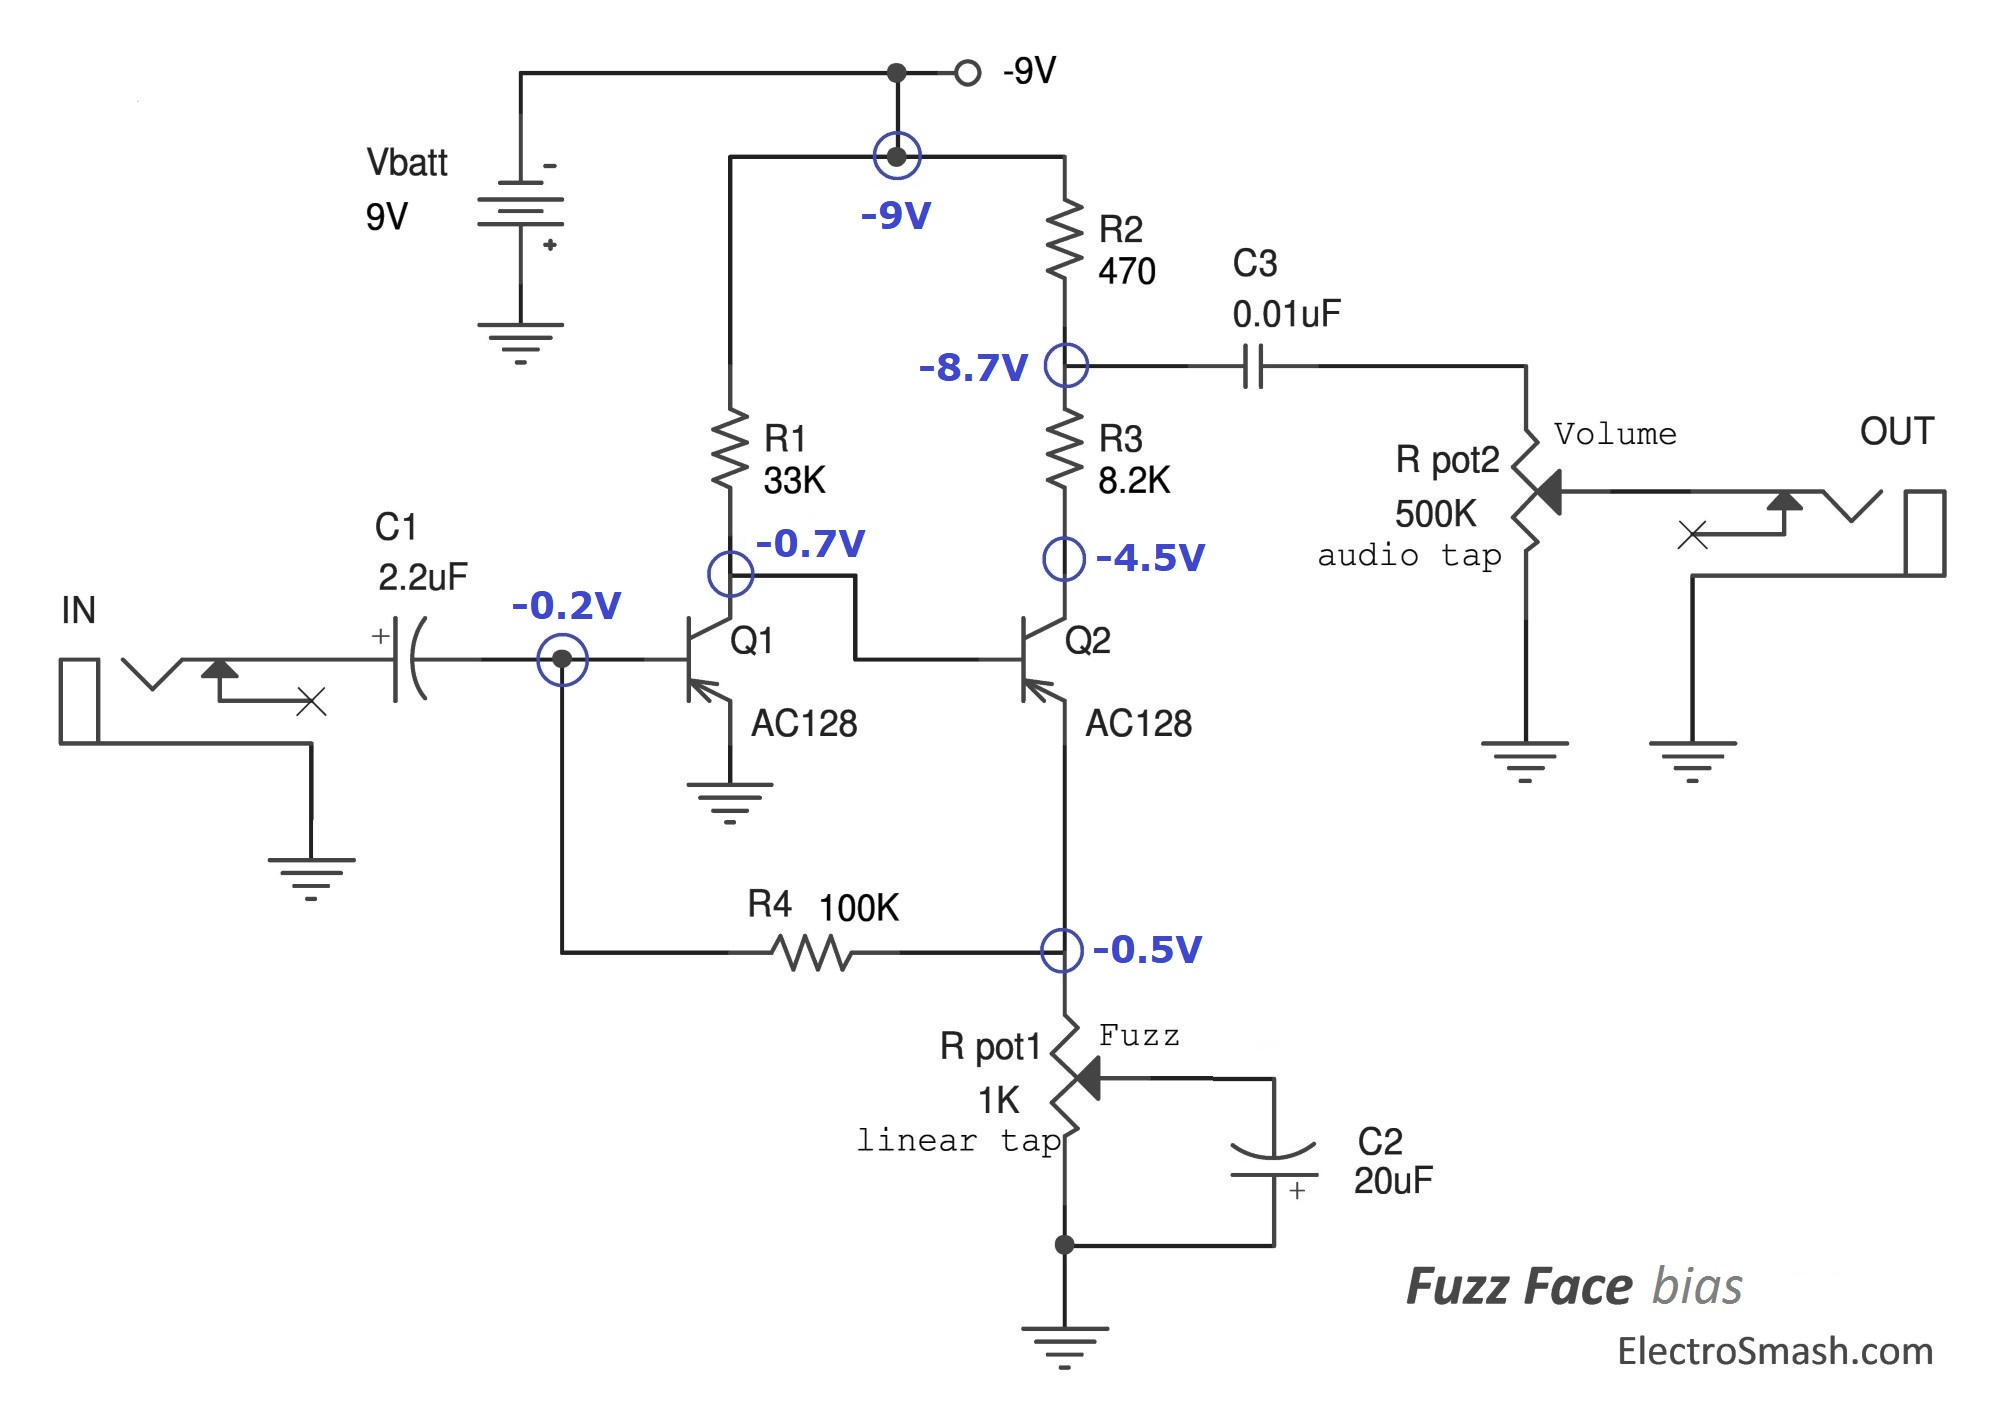 fuzz face bias electrosmash fuzz face analysis fuzz face wiring diagram at soozxer.org